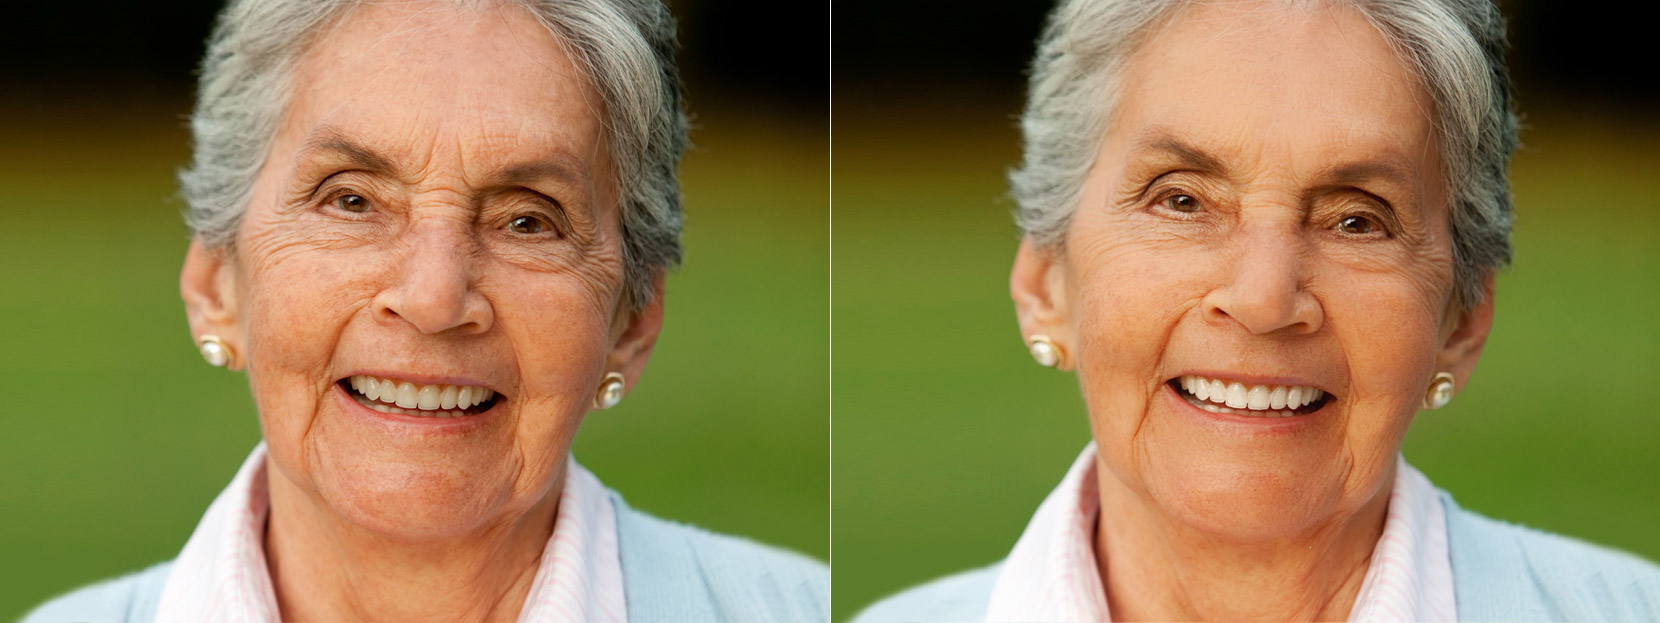 Portrait photo before and after face retouch on Makeup.Pho.to